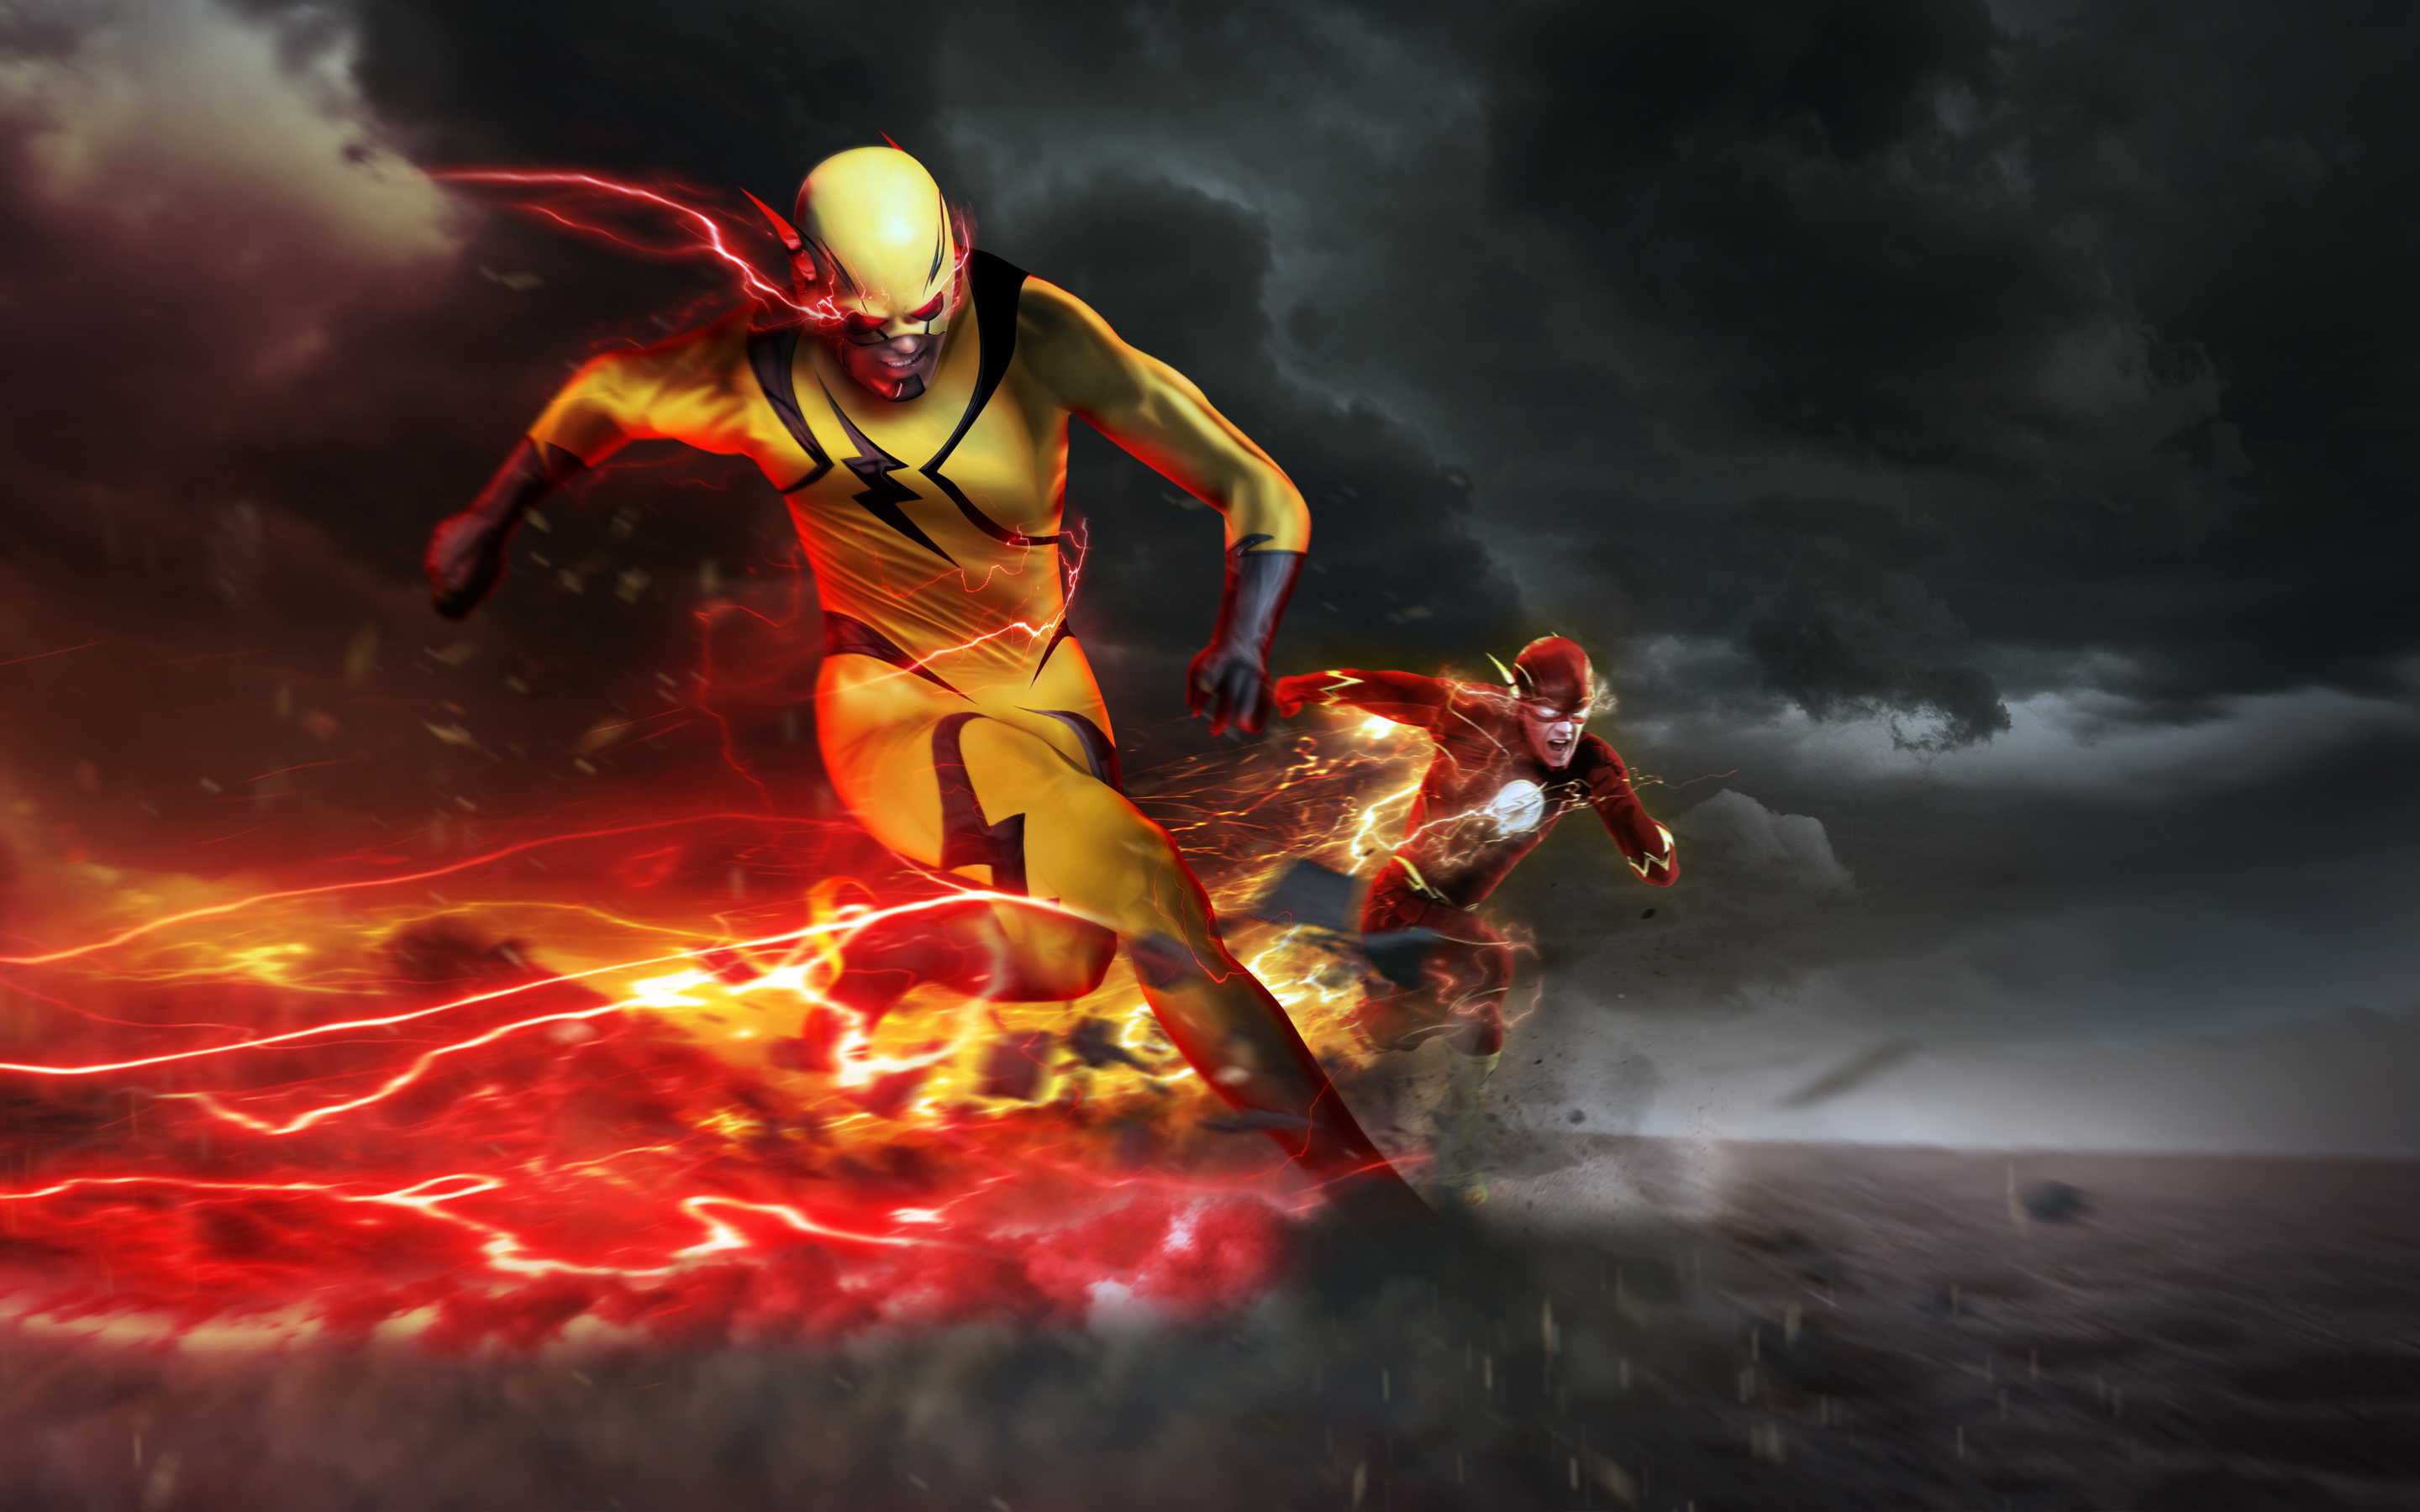 Eobard Thawne as Professor Zoom in The Flash Wallpapers 2880x1800